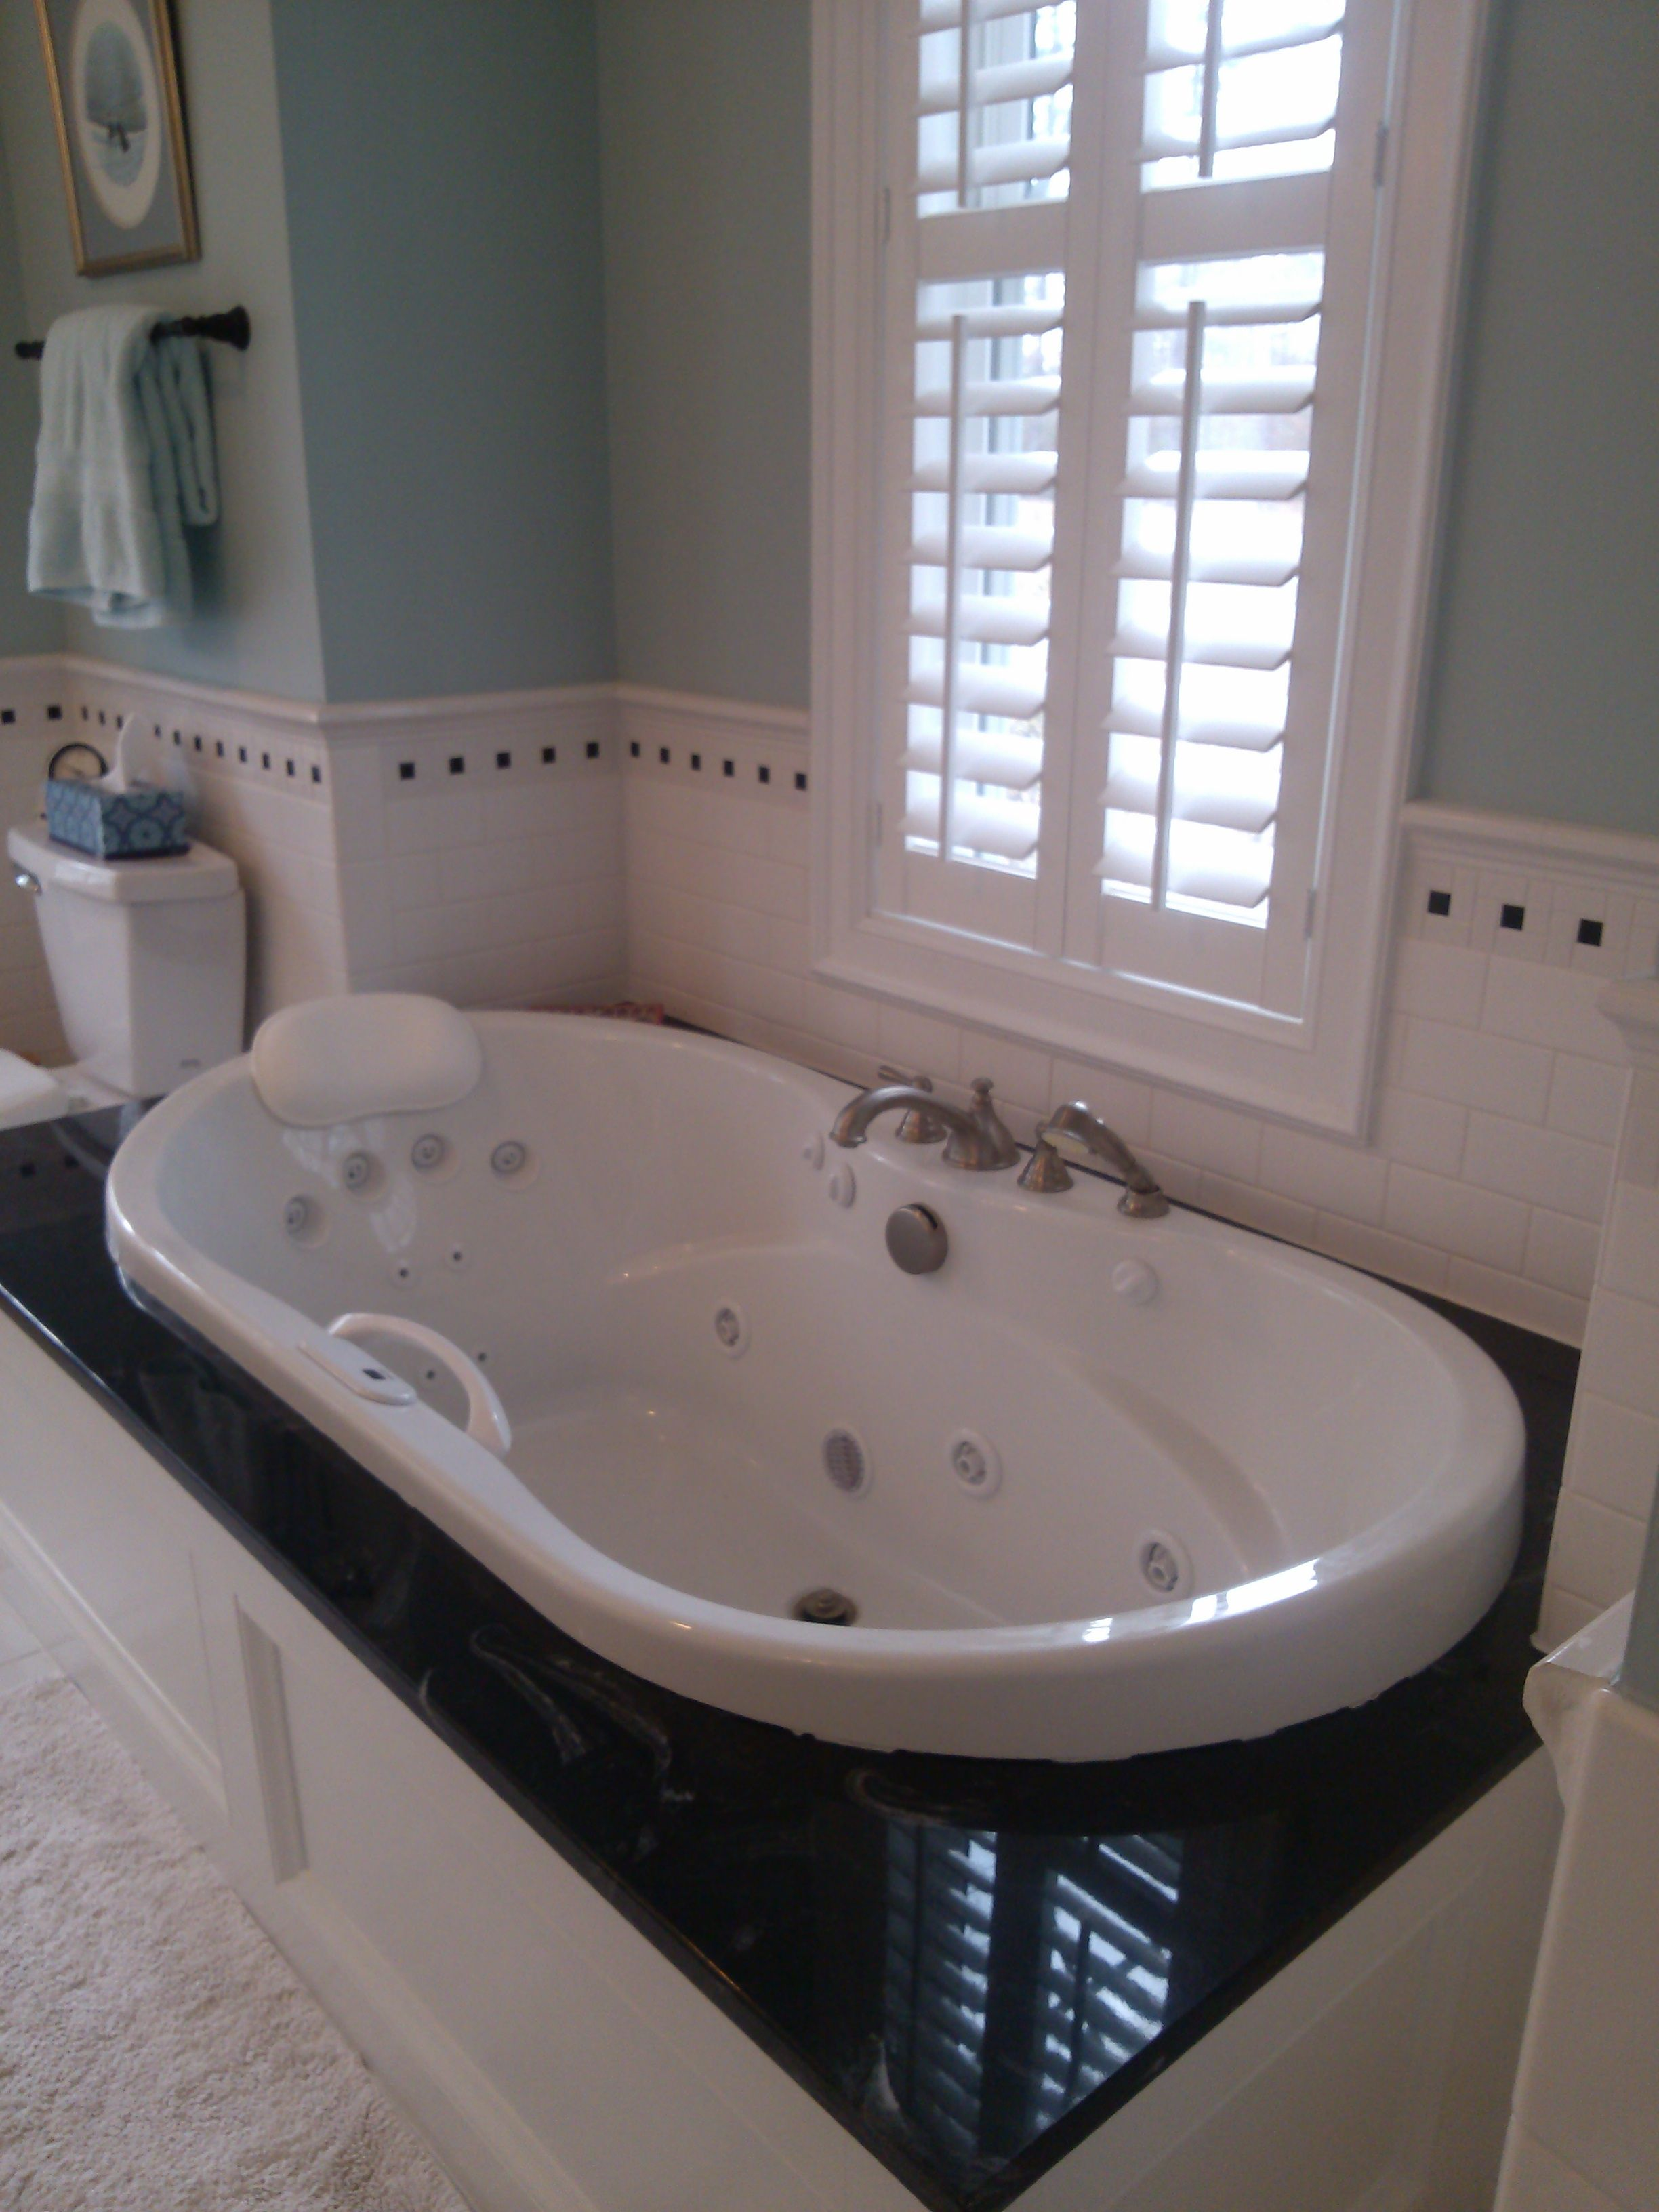 Relaxing In Luxury Black White Cultured Marble Surround Backdrops This Whirlpool Tub And Adds A Richness In Cultured Marble Whirlpool Tub Whirlpool Bathtub